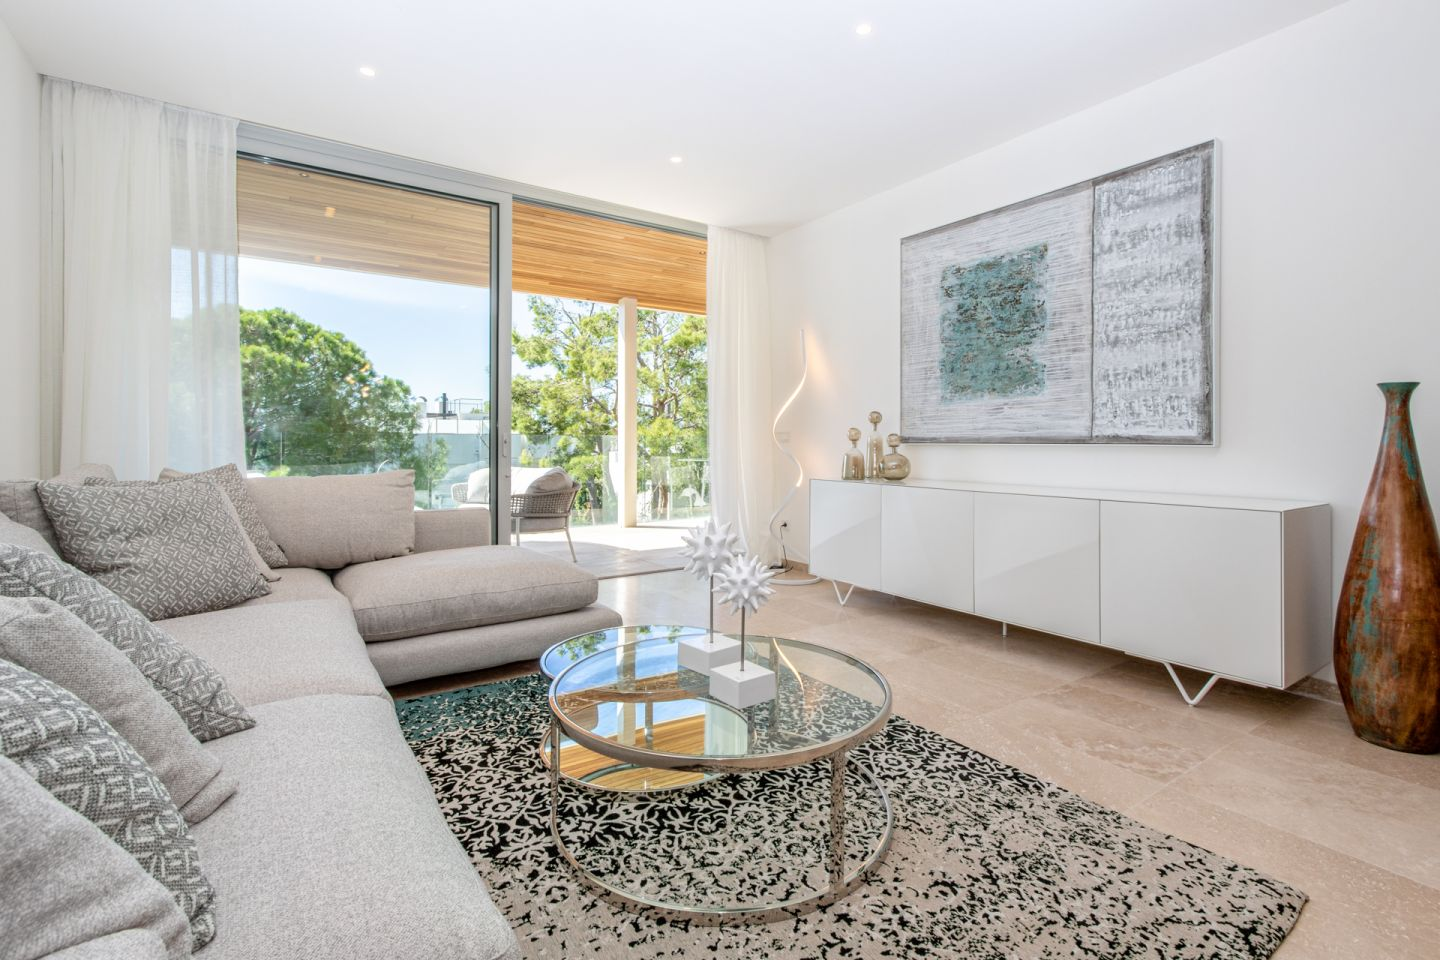 3 Bed Penthouse for sale in PUERTO POLLENSA 5